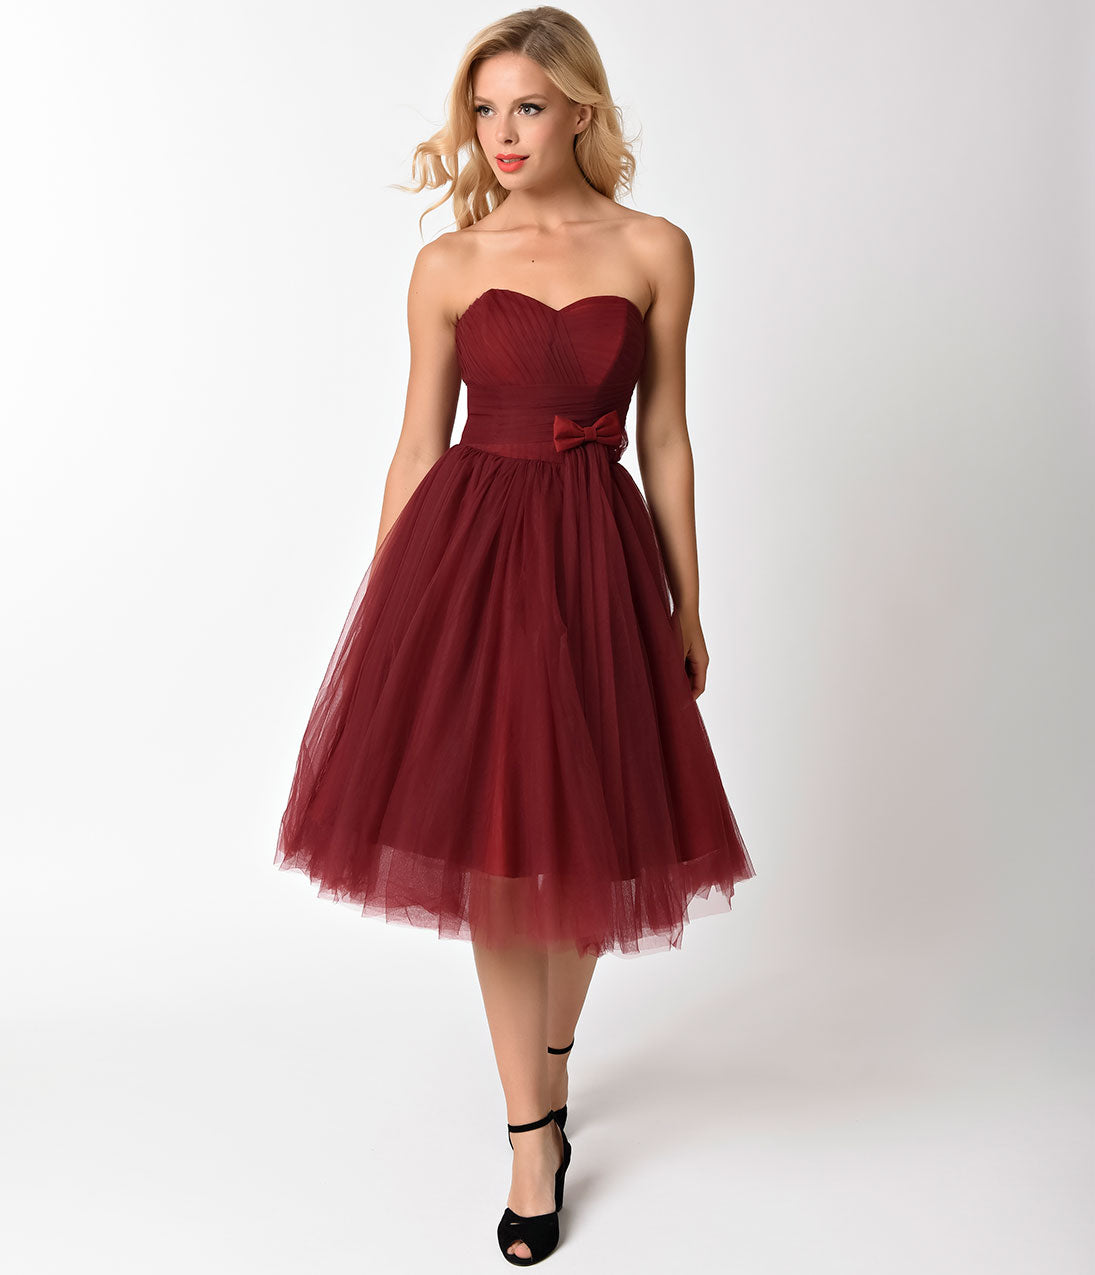 dress party cocktail